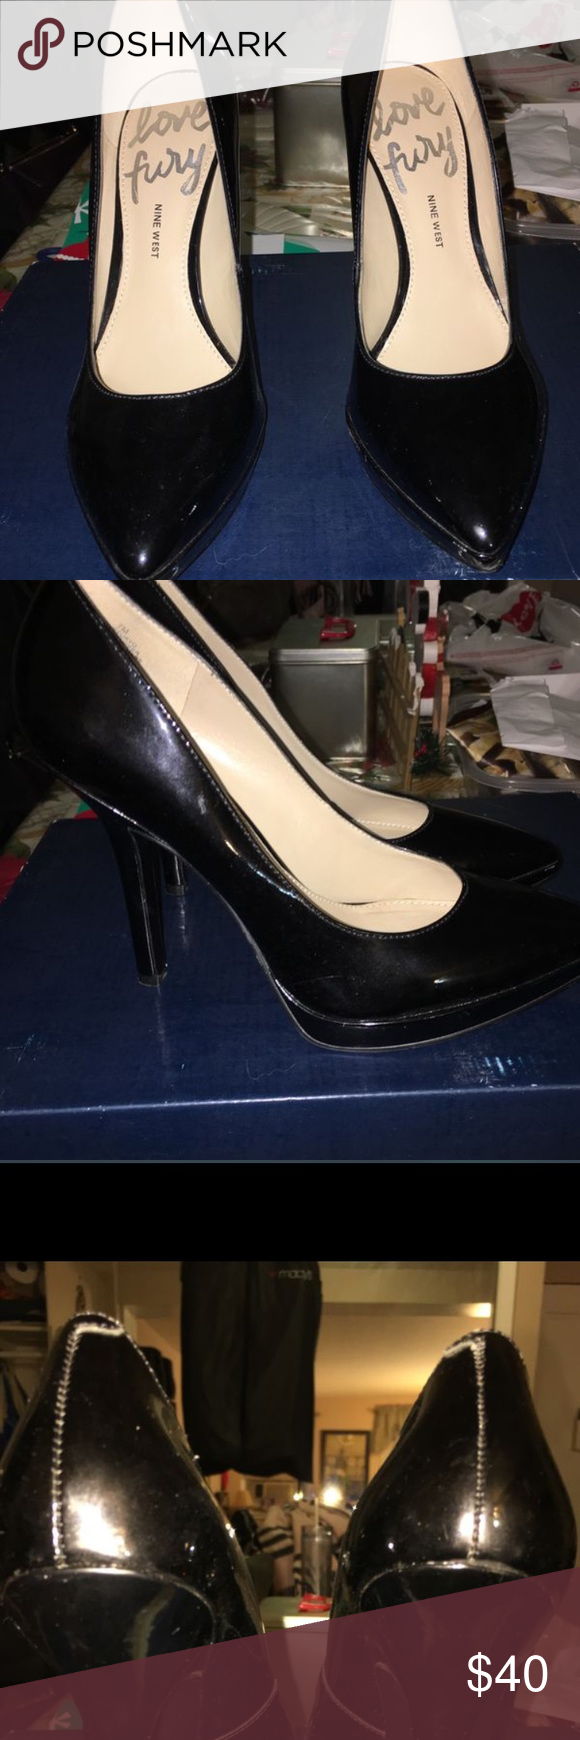 ed35eda700eb Nine West Love fury pumps in black Only worn once size 61 2 Love Fury